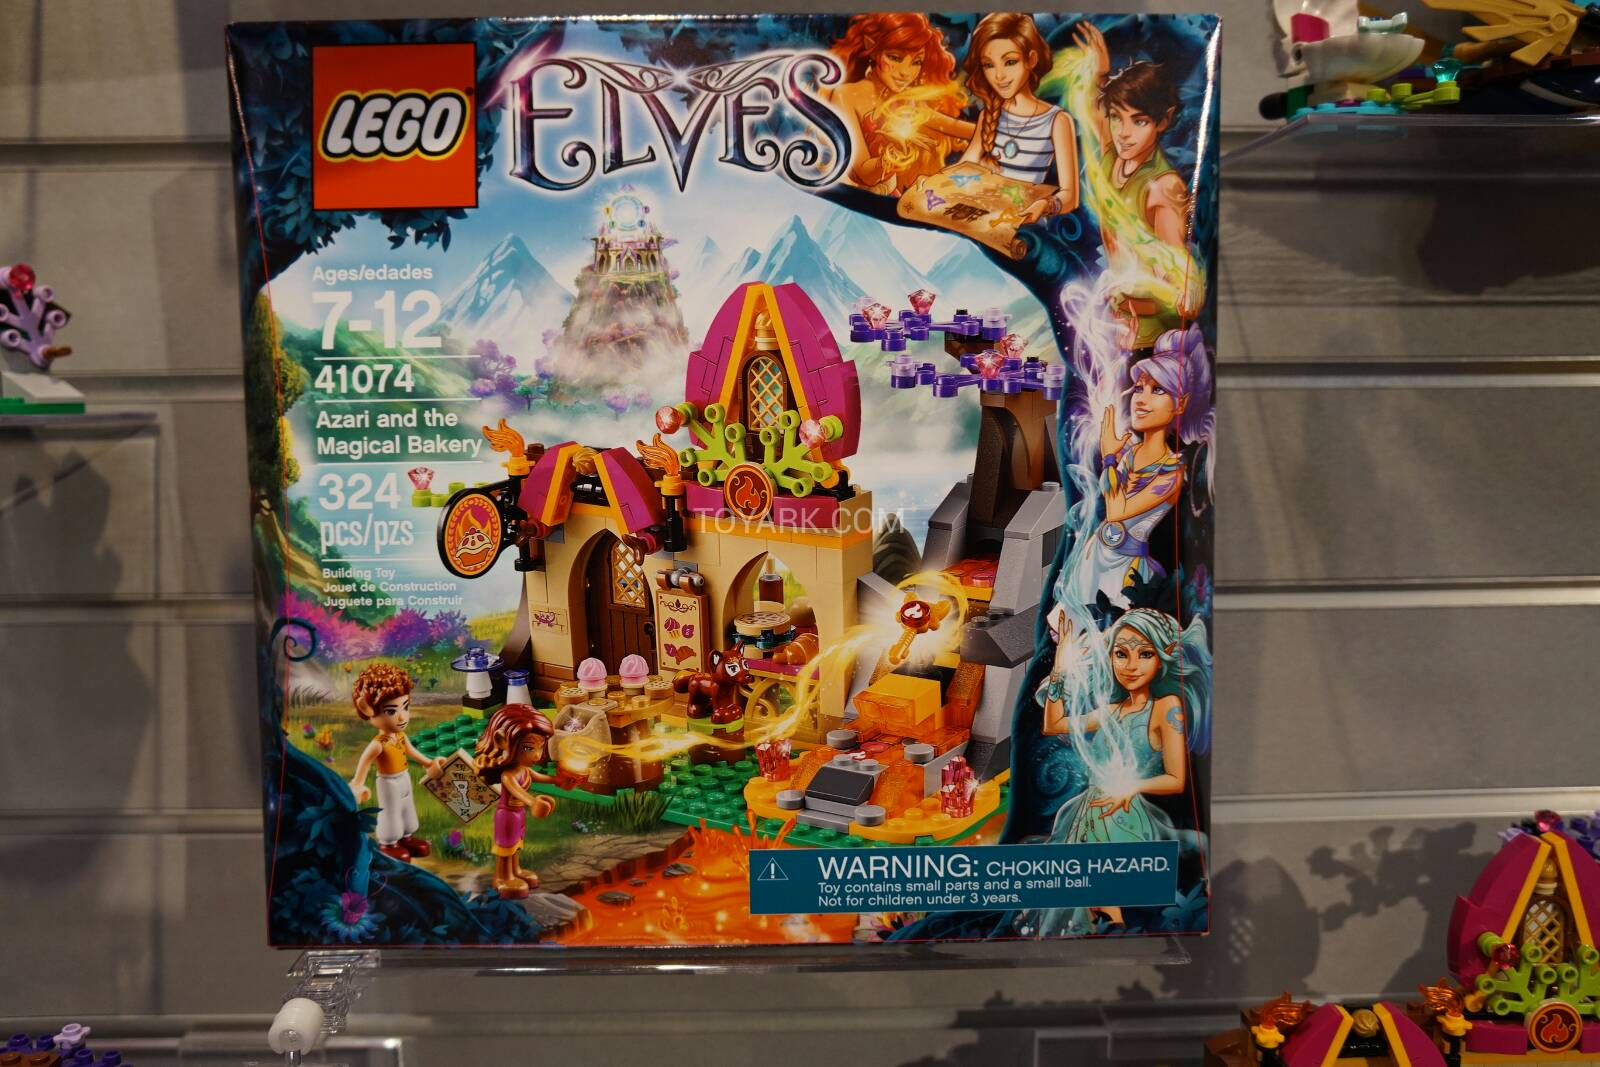 Toy-Fair-2015-LEGO-Elves-010.jpg